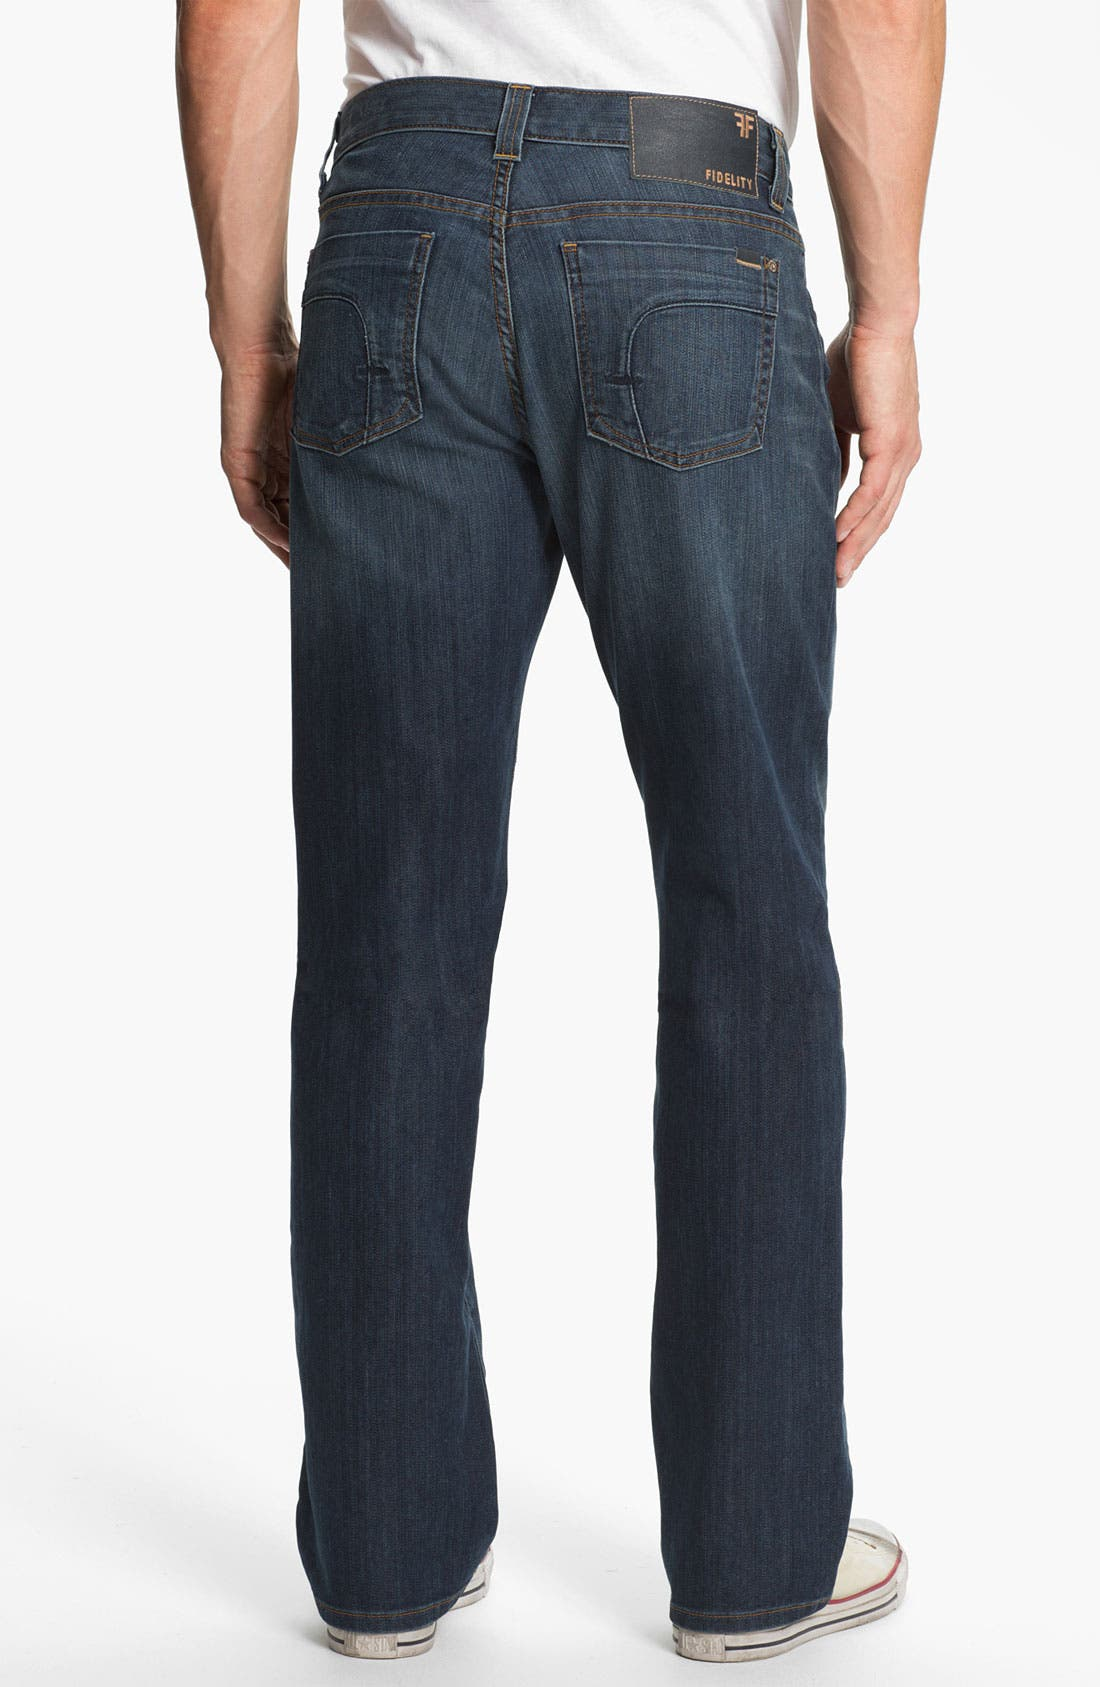 Alternate Image 2  - Fidelity Denim '5011' Straight Leg Jeans (Trigger Medium)